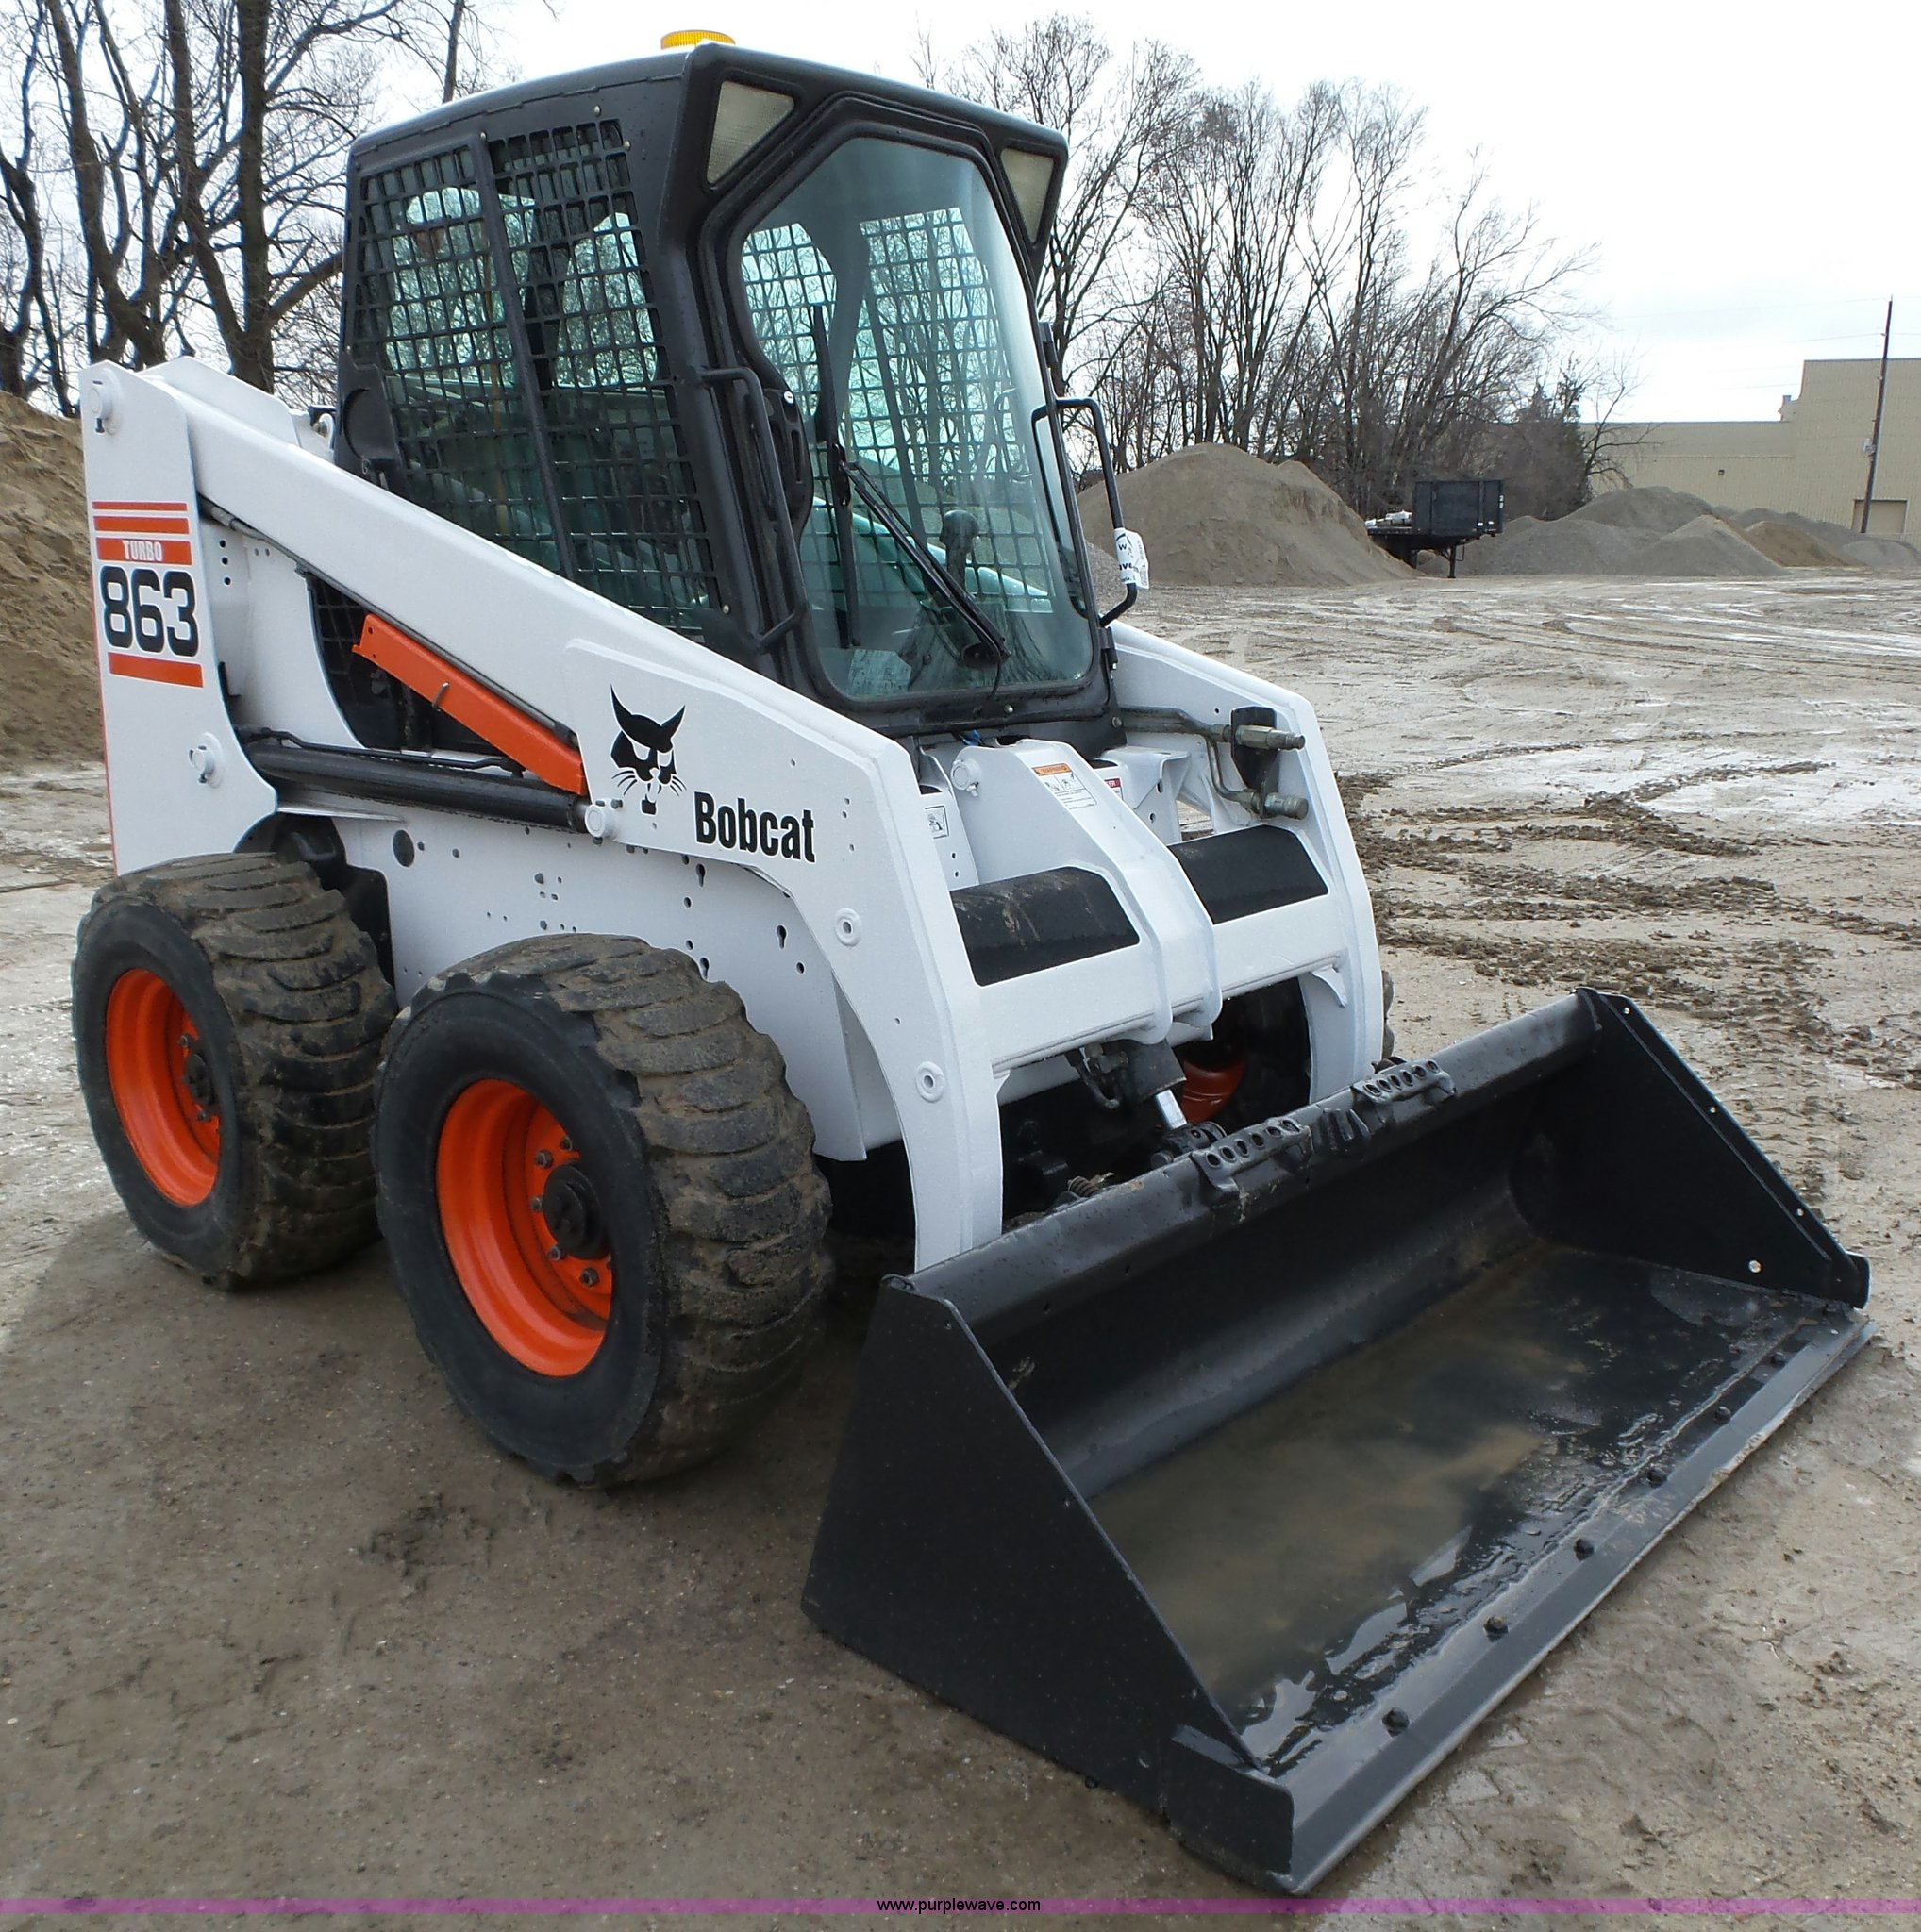 2001 Bobcat 863 Turbo skid steer | Item L5593 | SOLD! April